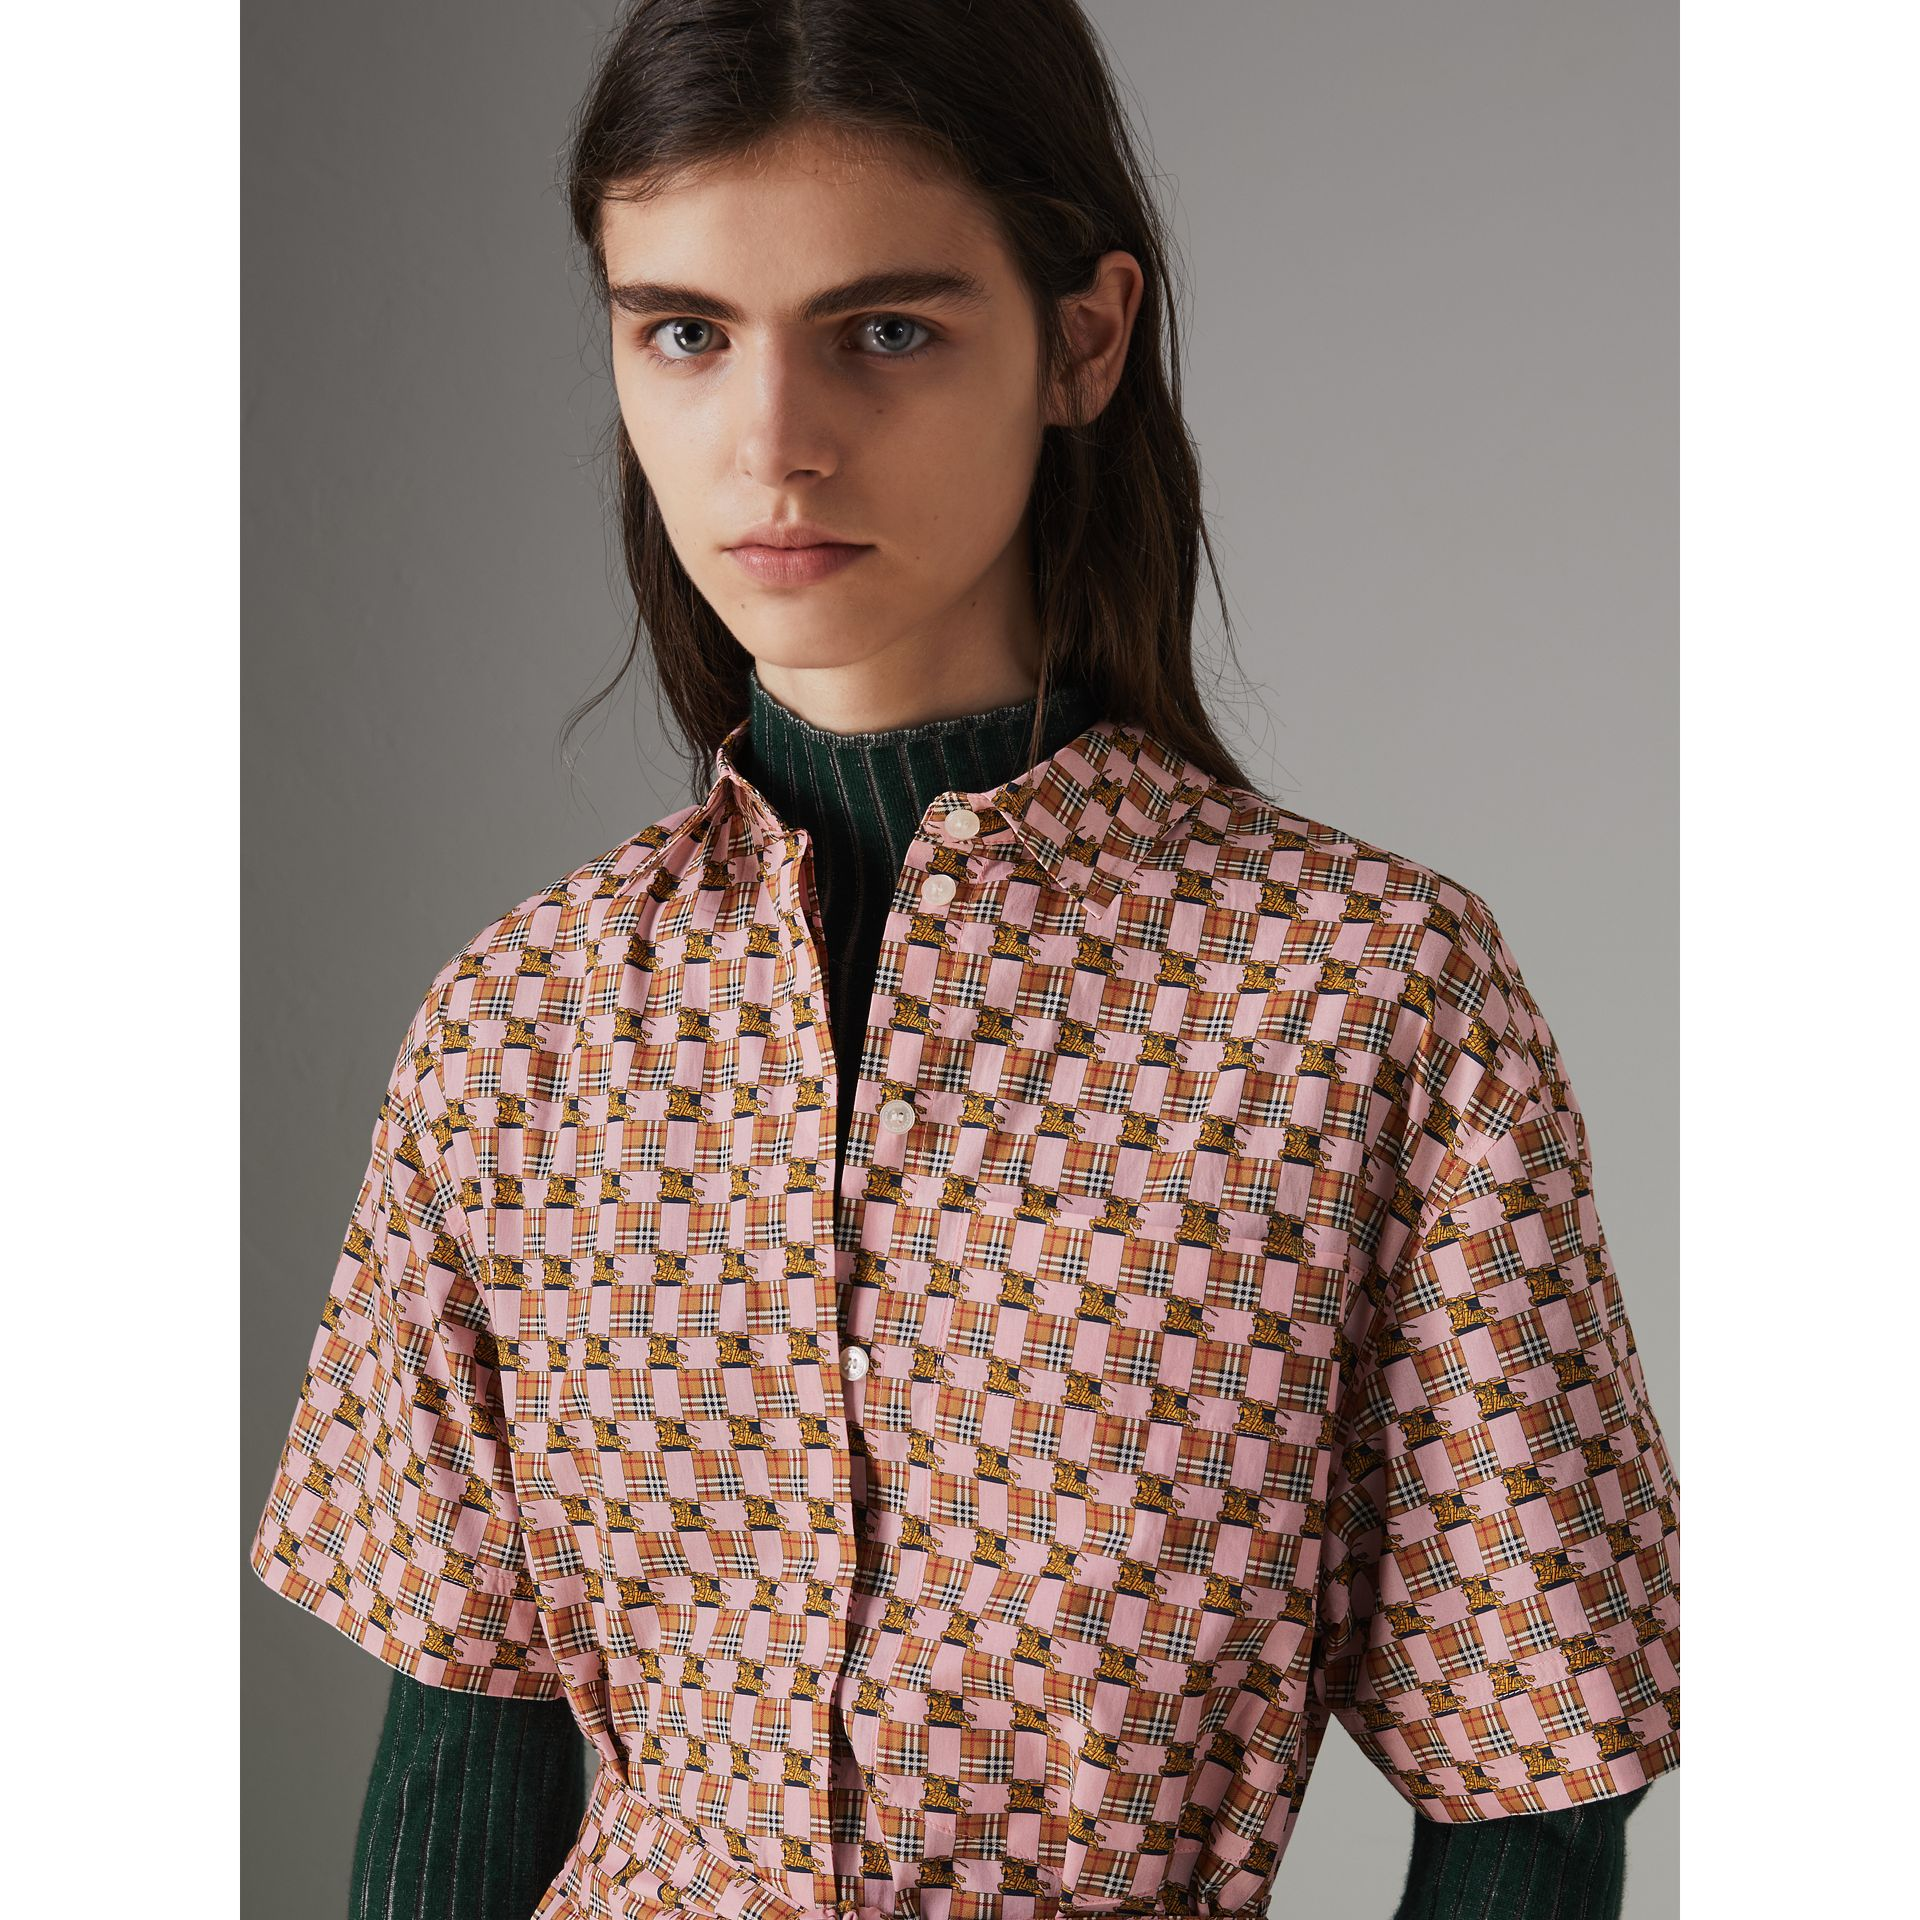 Tiled Archive Print Cotton Shirt Dress in Pink - Women | Burberry Singapore - gallery image 1